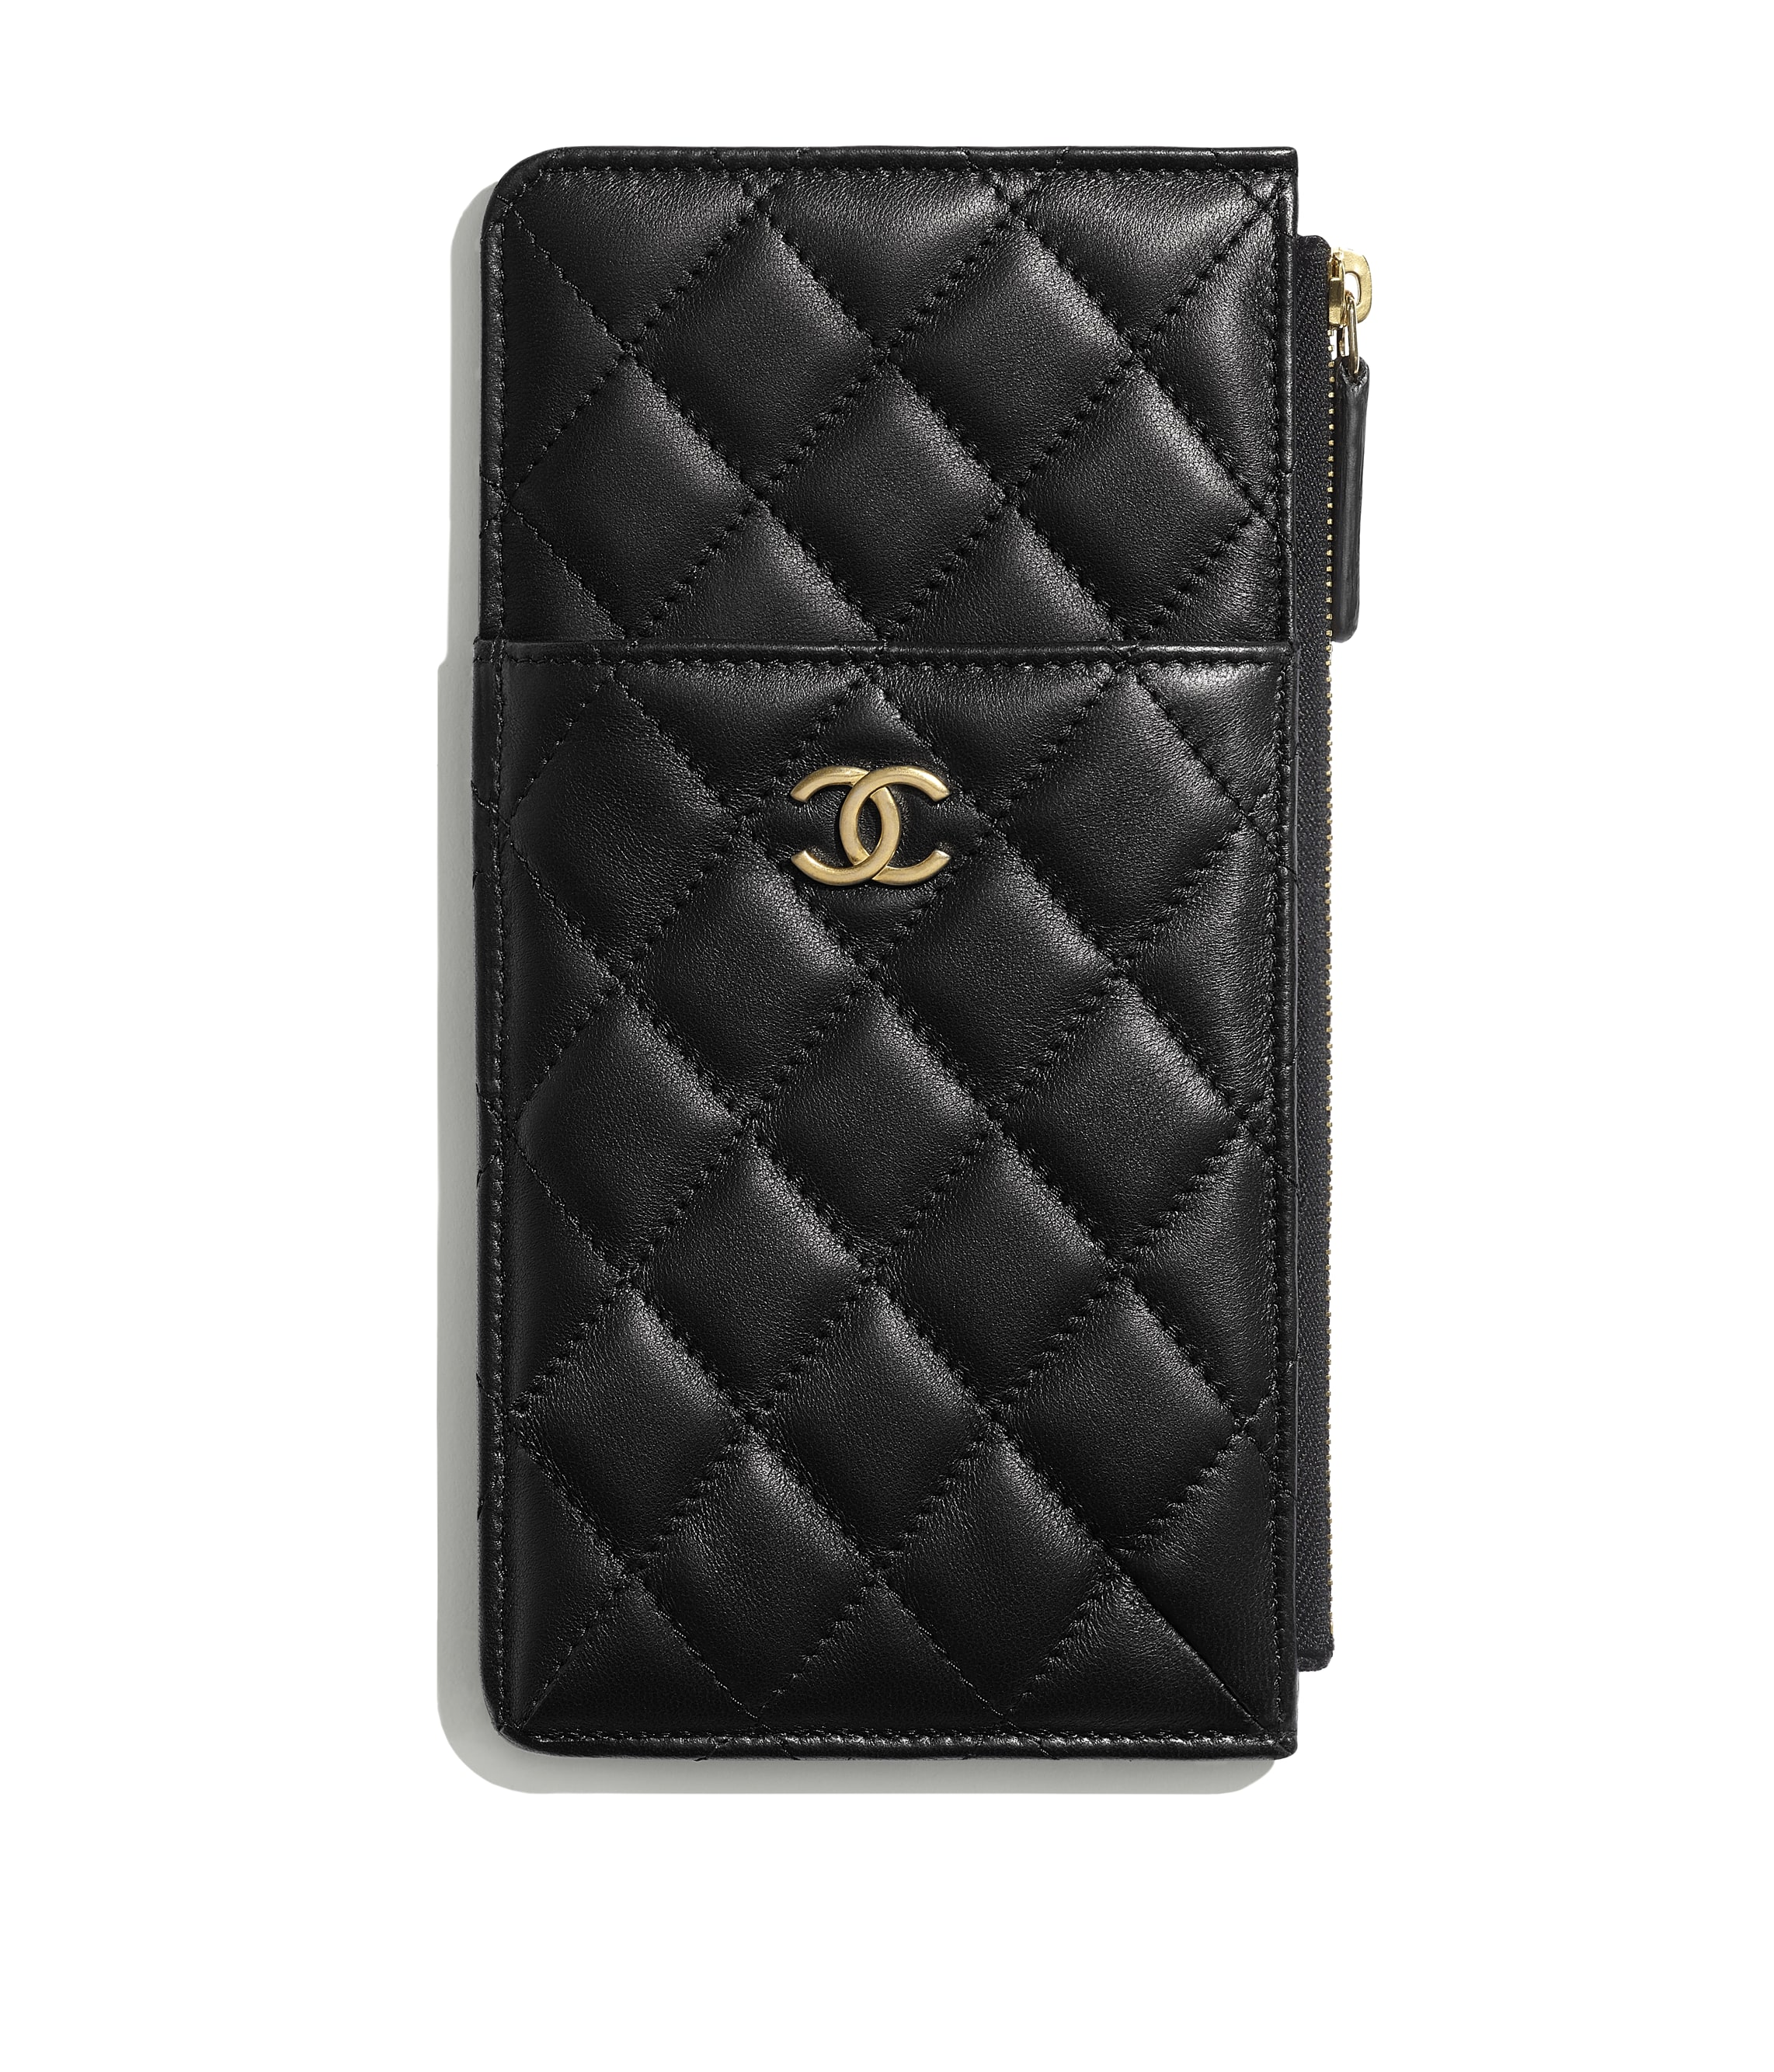 2669f1dc6a4f11 Pouches & Cases - Small Leather Goods - CHANEL